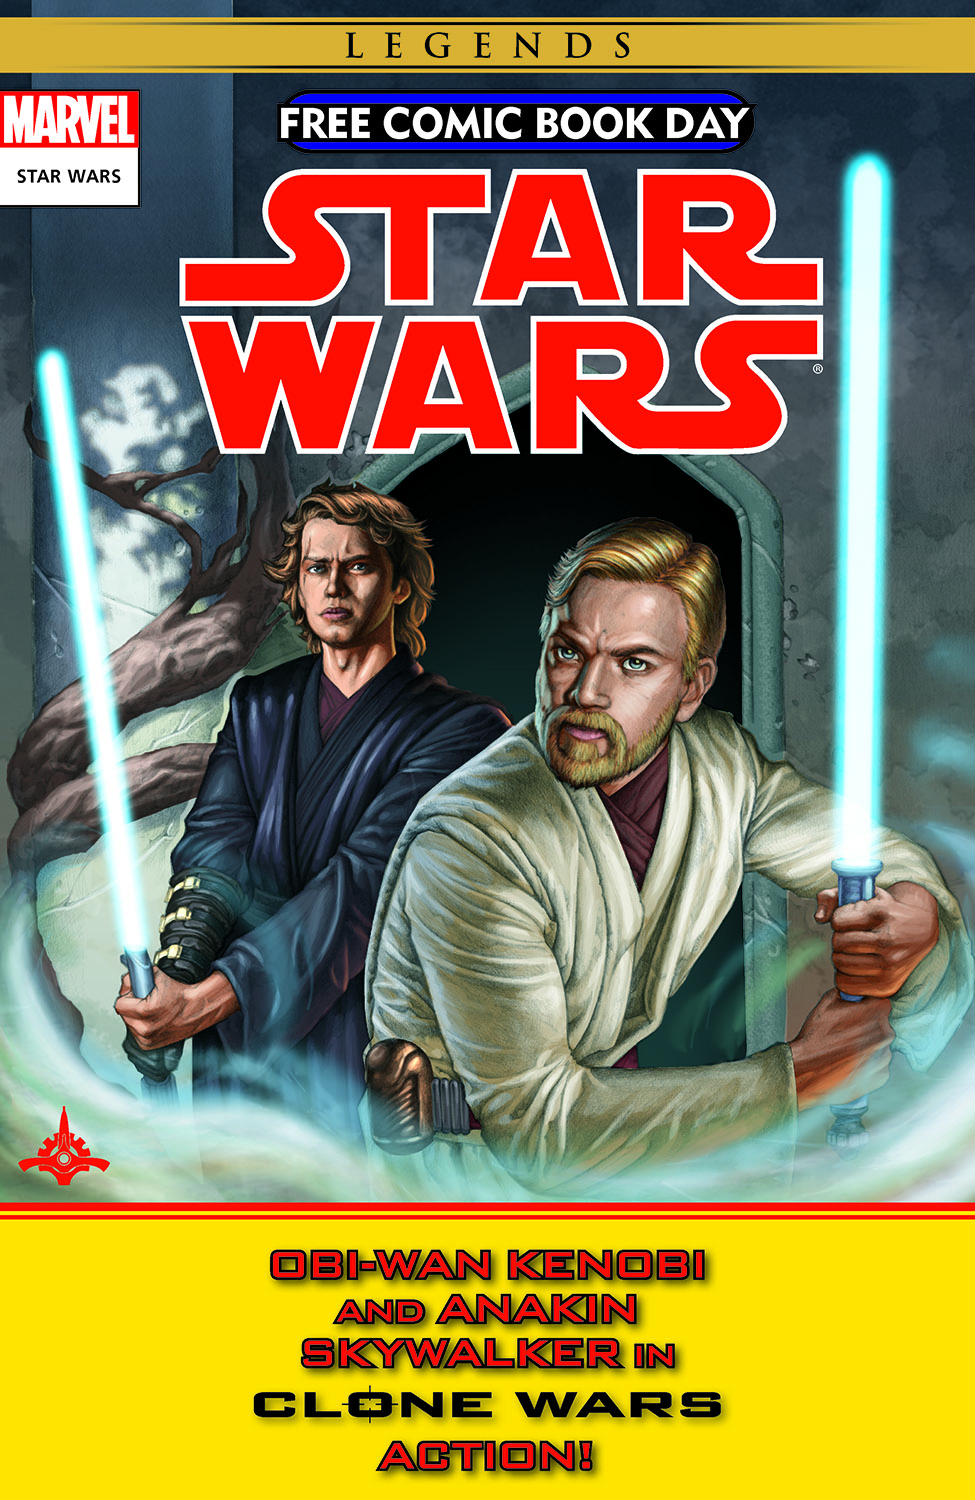 Free Comic Book Day: Star Wars (2005) #1